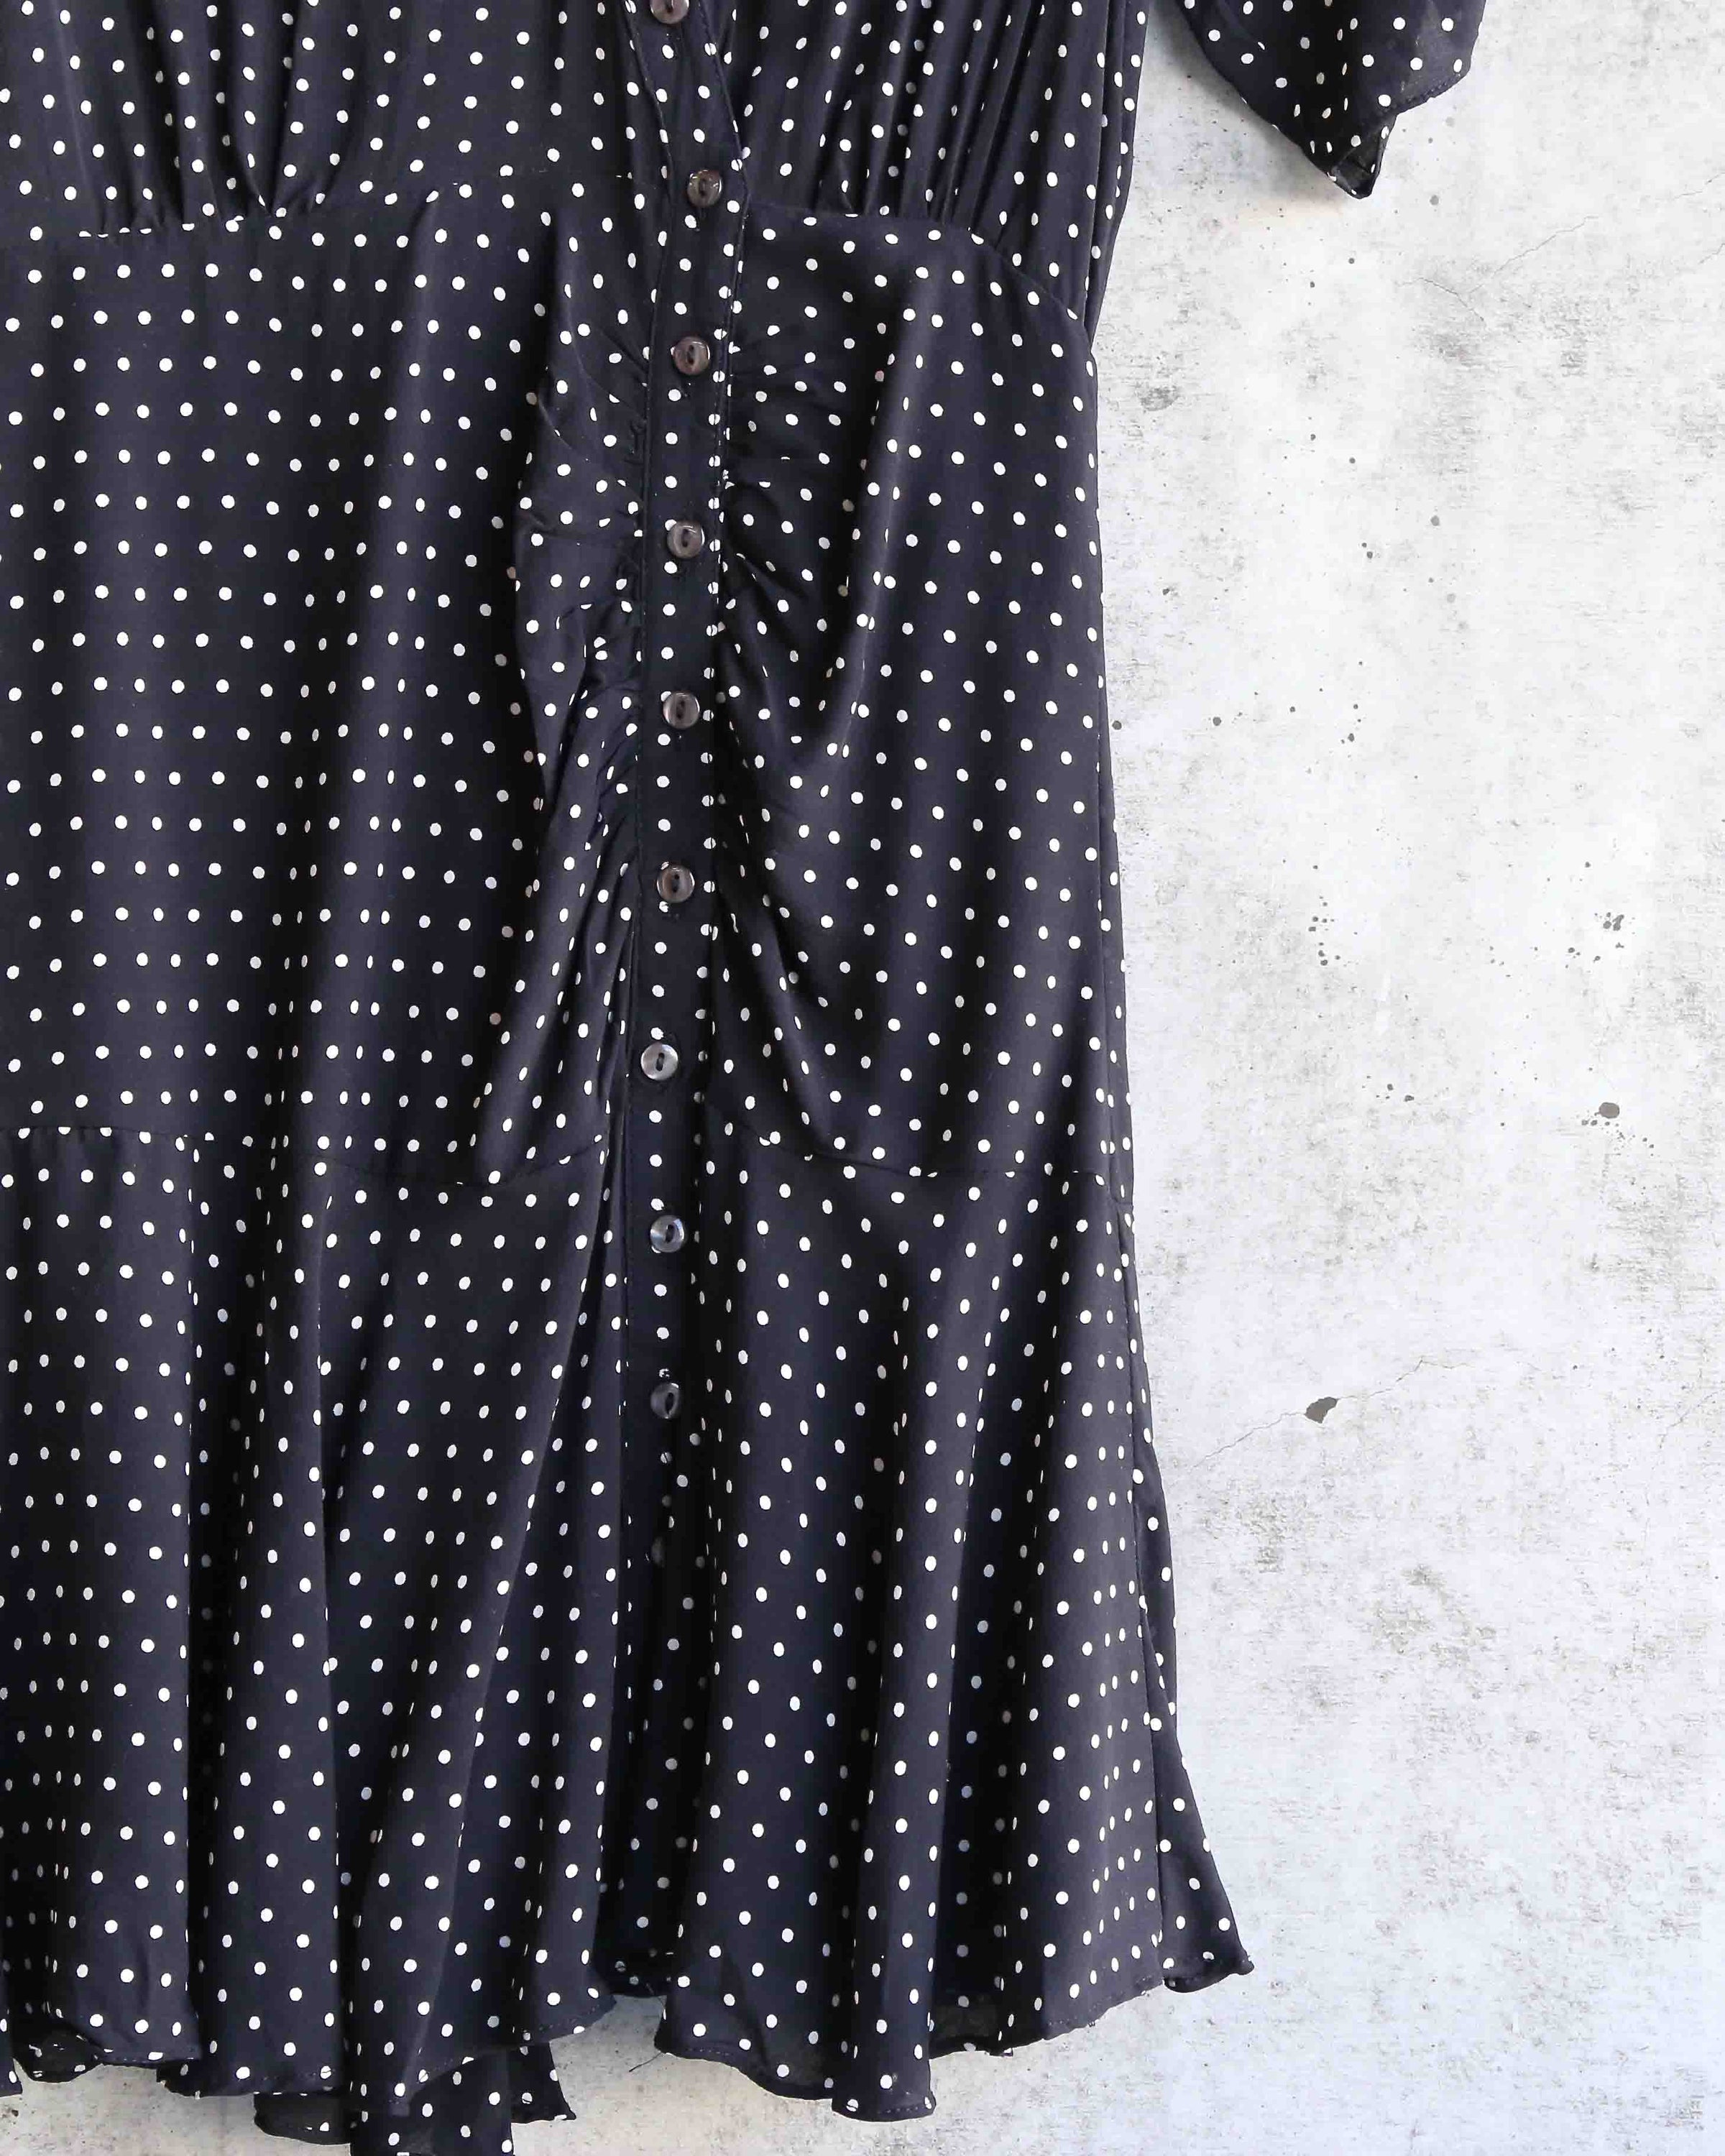 28c73e7414de2 free people - pippa short sleeve polka dot mini dress - black